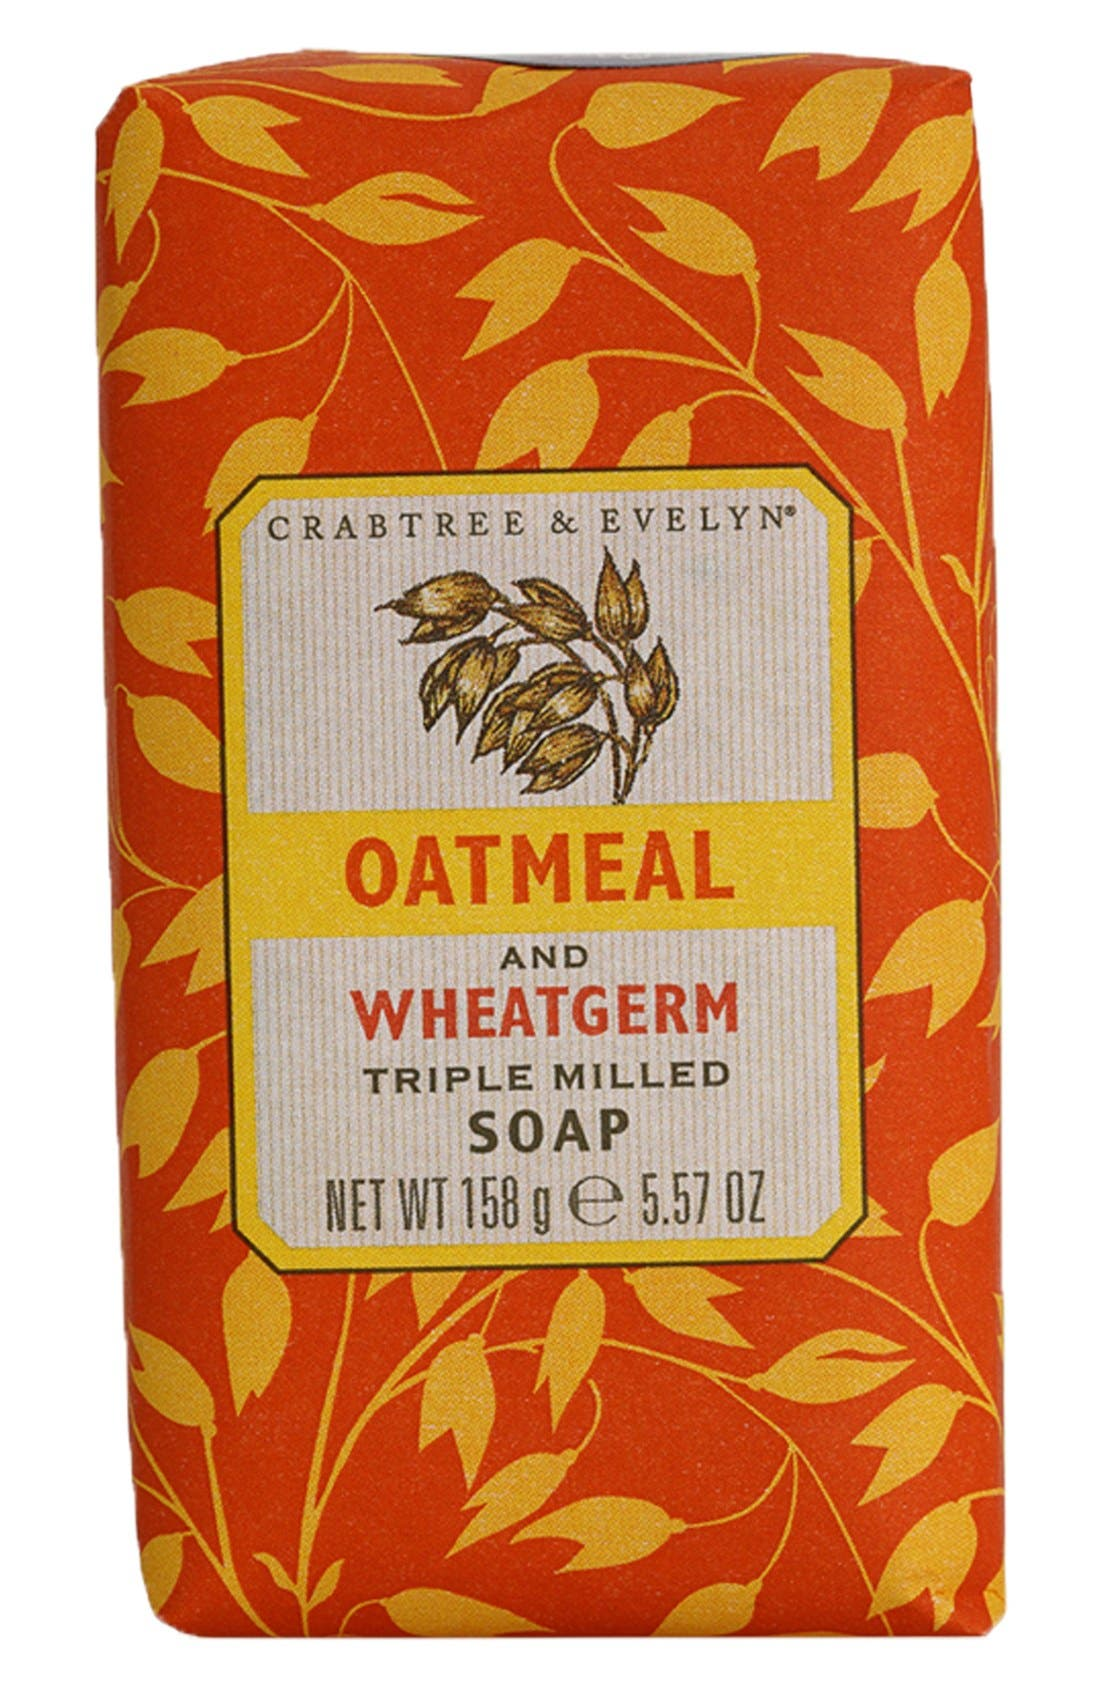 Crabtree & Evelyn 'Oatmeal & Wheatgerm' Triple Milled Soap